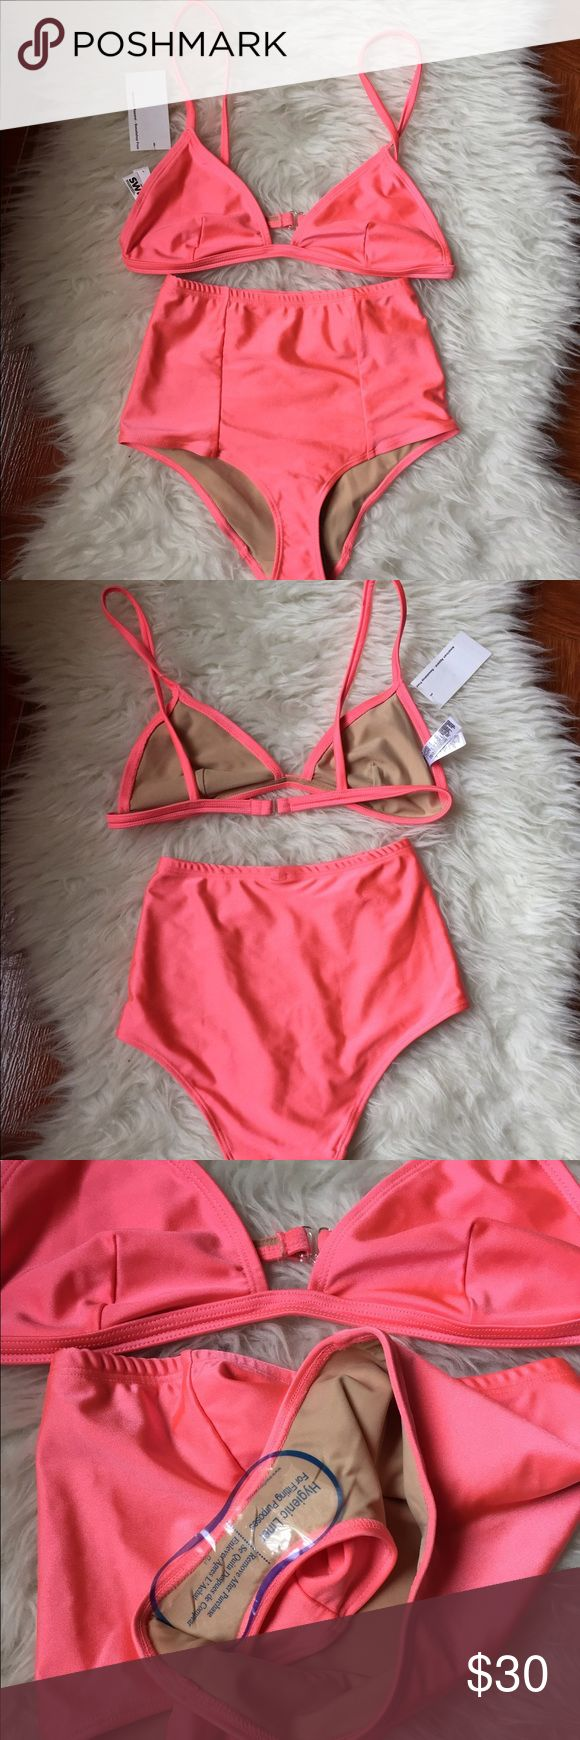 American Apparel two piece bikini Swimsuit American apparel coral ice pink two piece Swimsuit  Bottoms are a medium with hygienic liner but no tags  Tops is a large, new with tags  No flaws or defects!  Discontinued  Last two photos is how it looks on  Price is firm unless paid through depop, 🅿️aypal directly goods & services  🐙🐙🐙🐙🐙🐙🐙🐙 American Apparel Swim Bikinis